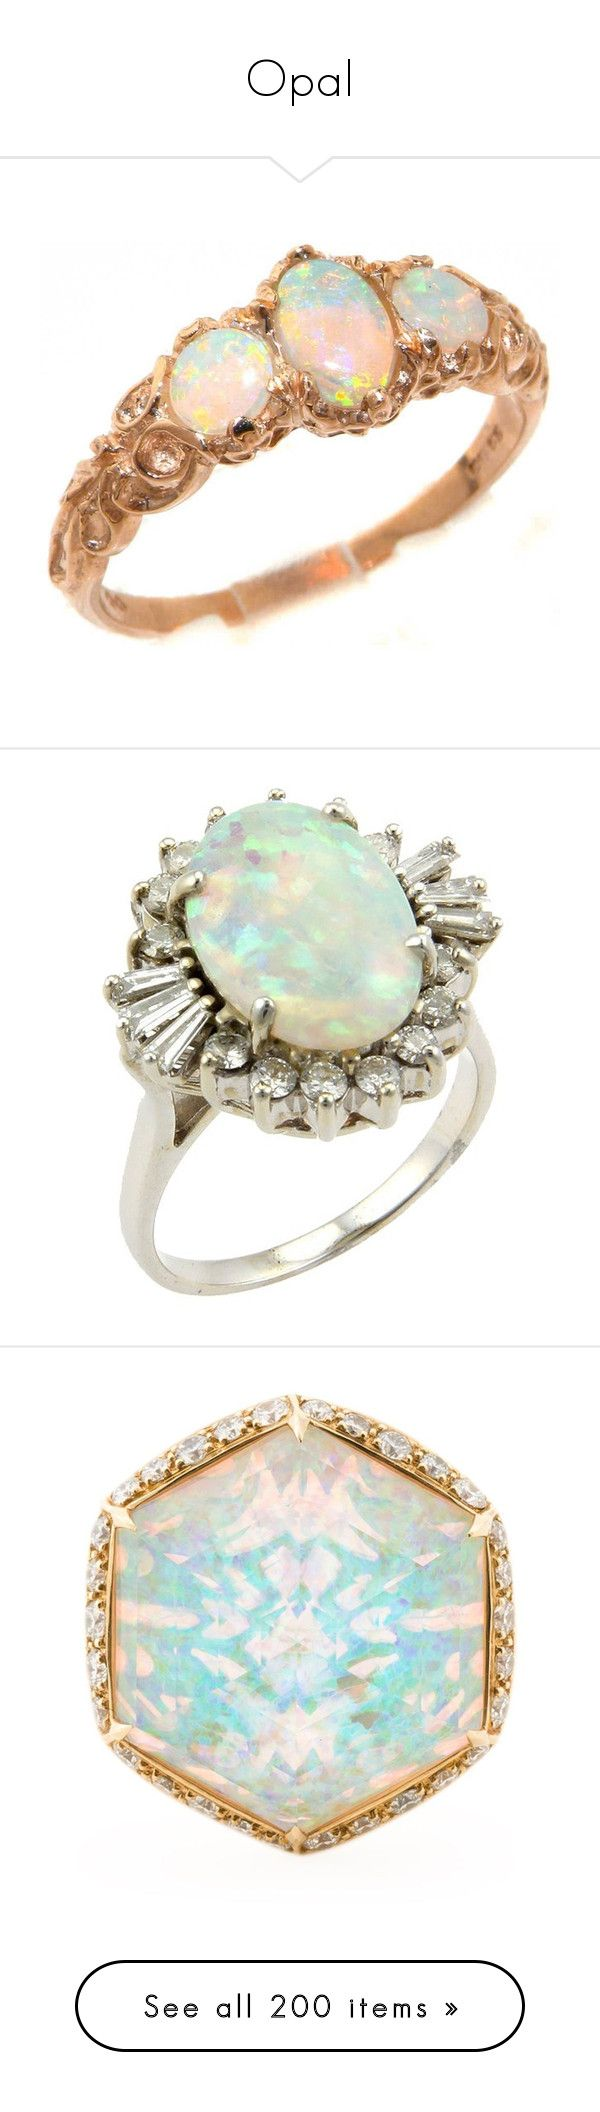 opal by twinkle twin liked on polyvore featuring jewelry rings accessories rose gold opal ring 14k ring pink gold engagement rings